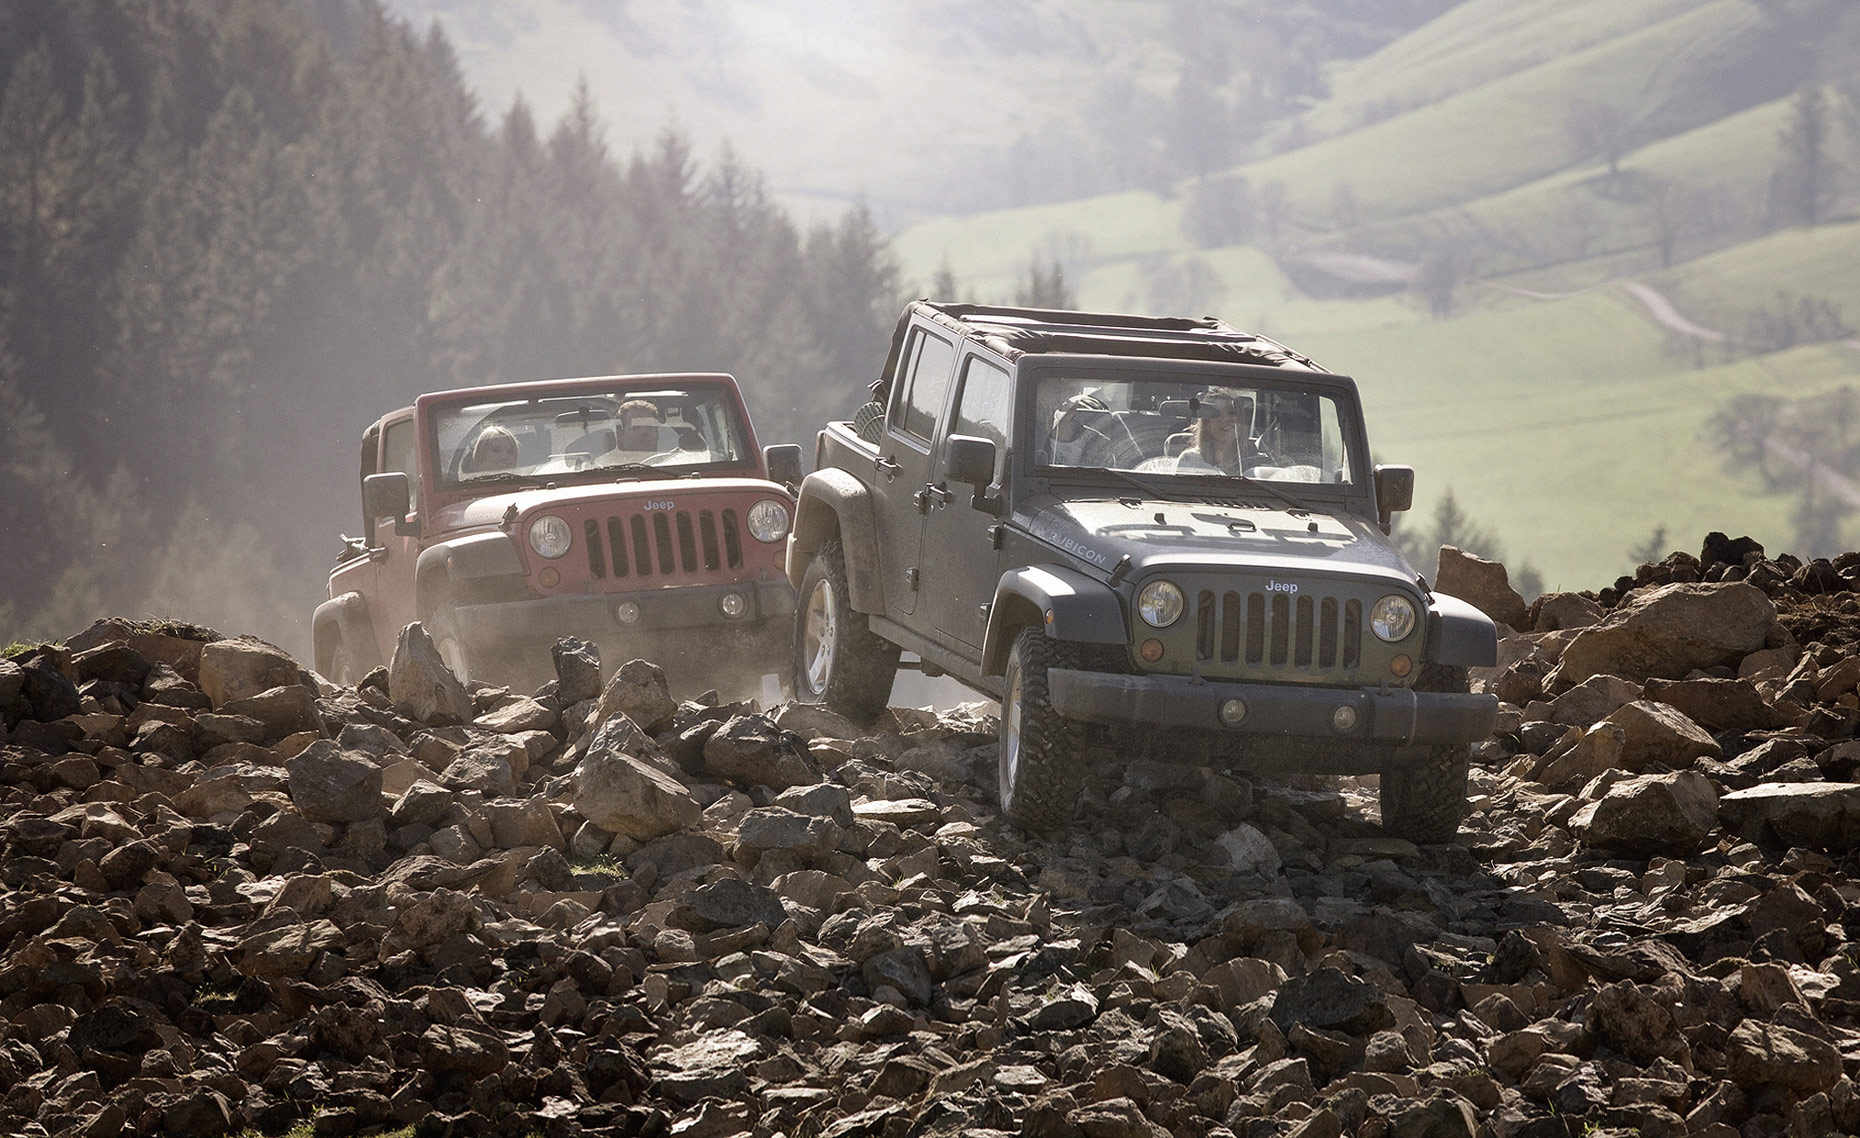 stanley-JEEP_0559-a.jpg